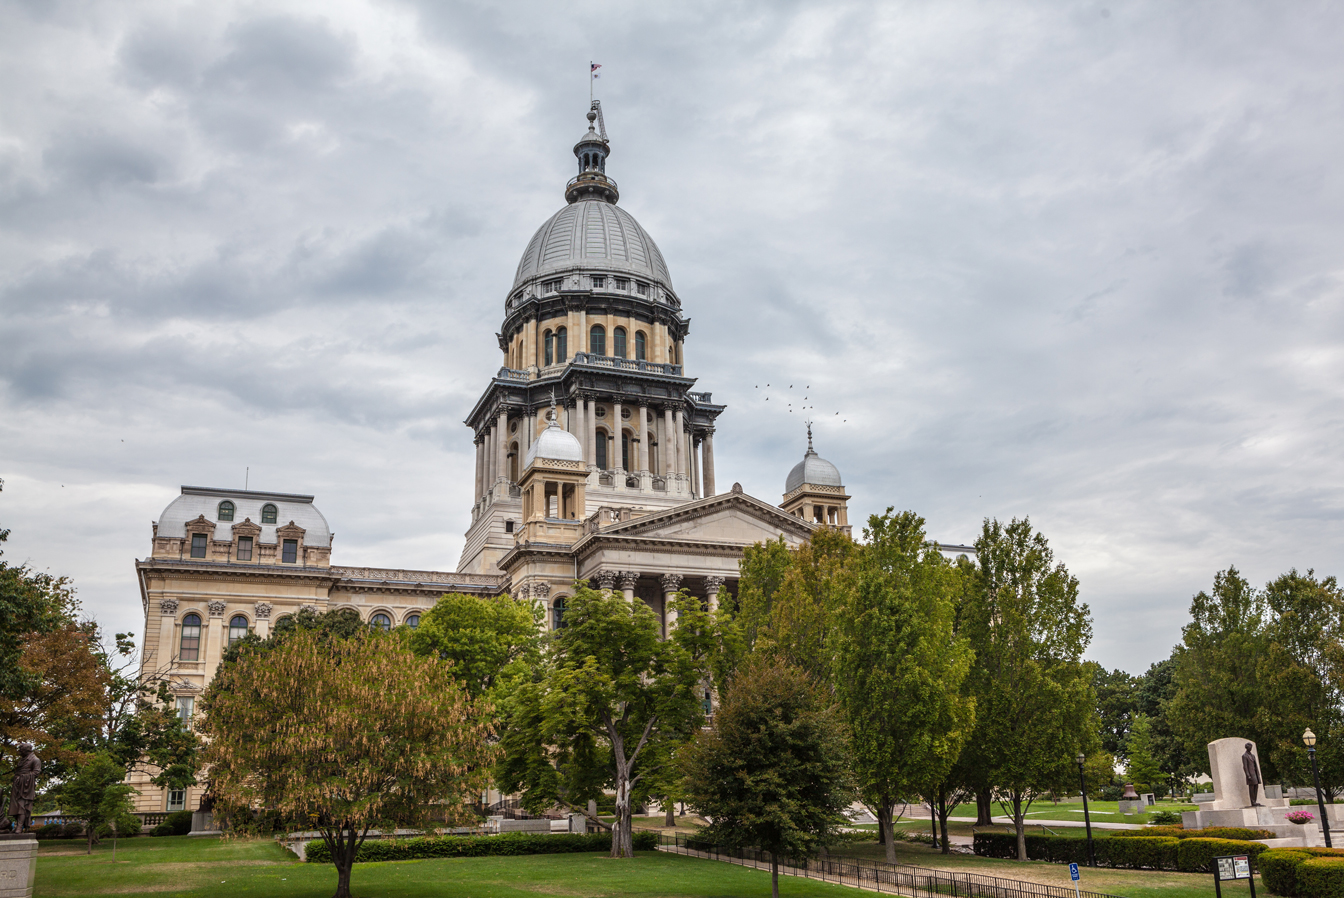 Illinois Supreme Court allows limited scope legal representations